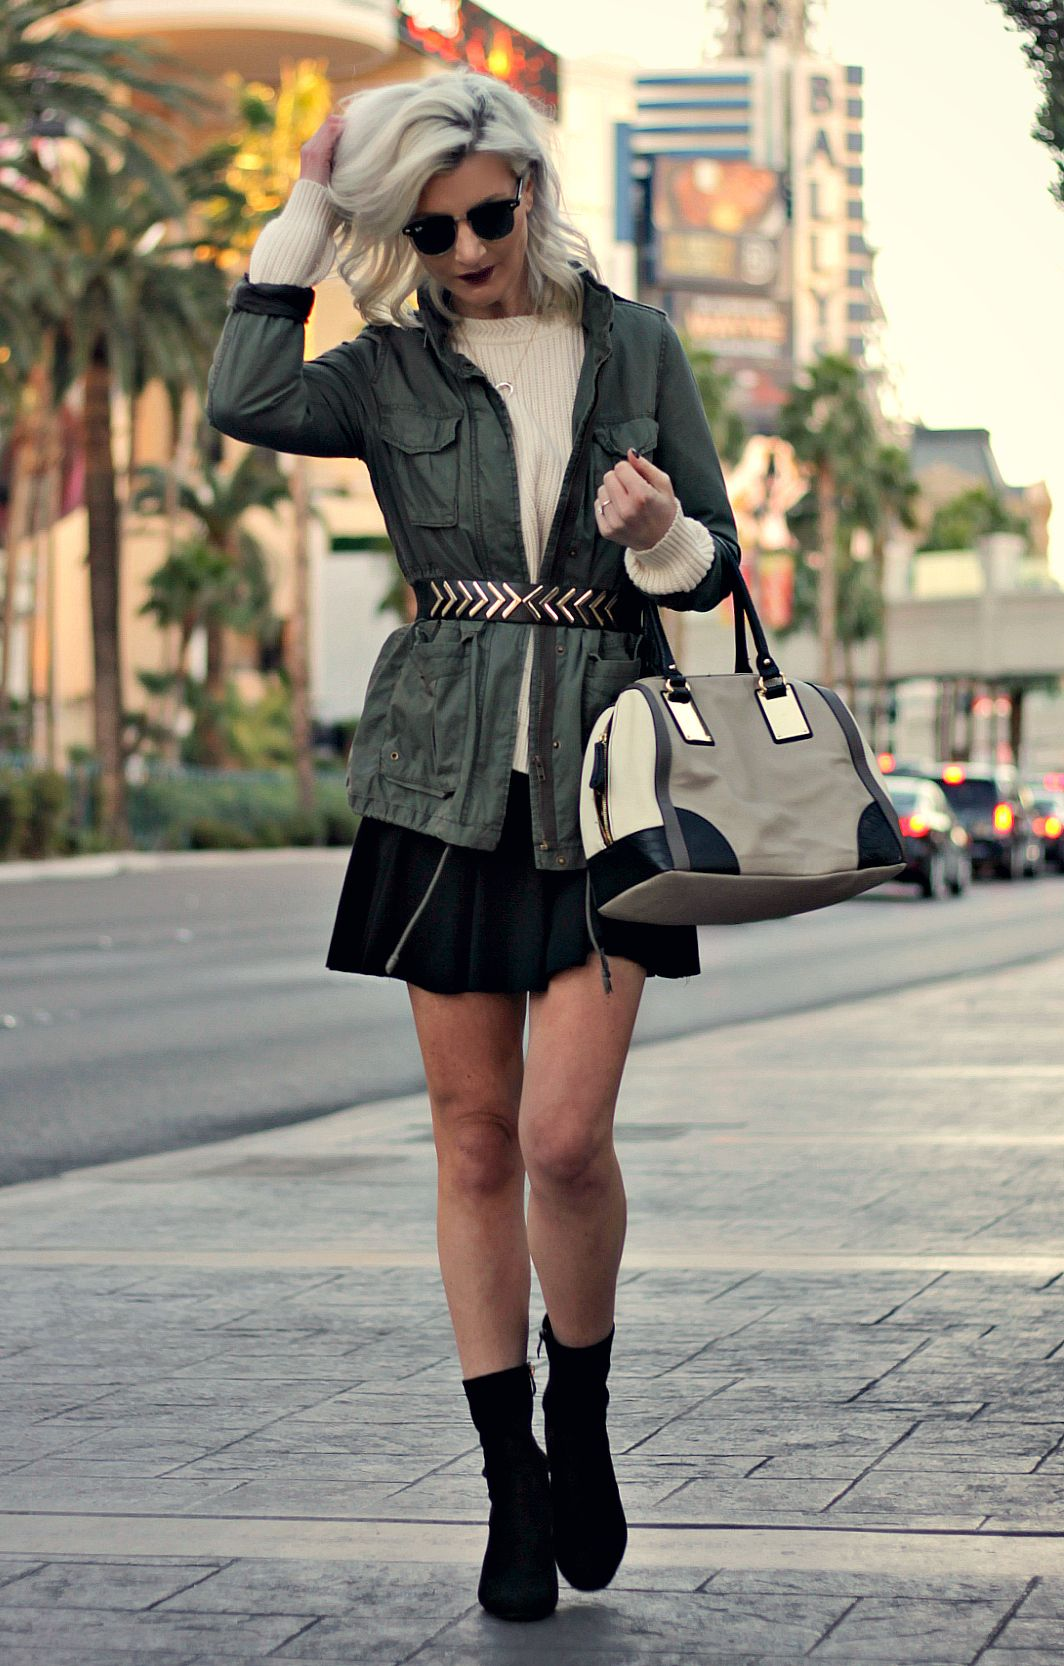 Outfit Inspo: Belted Coat, Skater Skirt, Slouchy Sweater